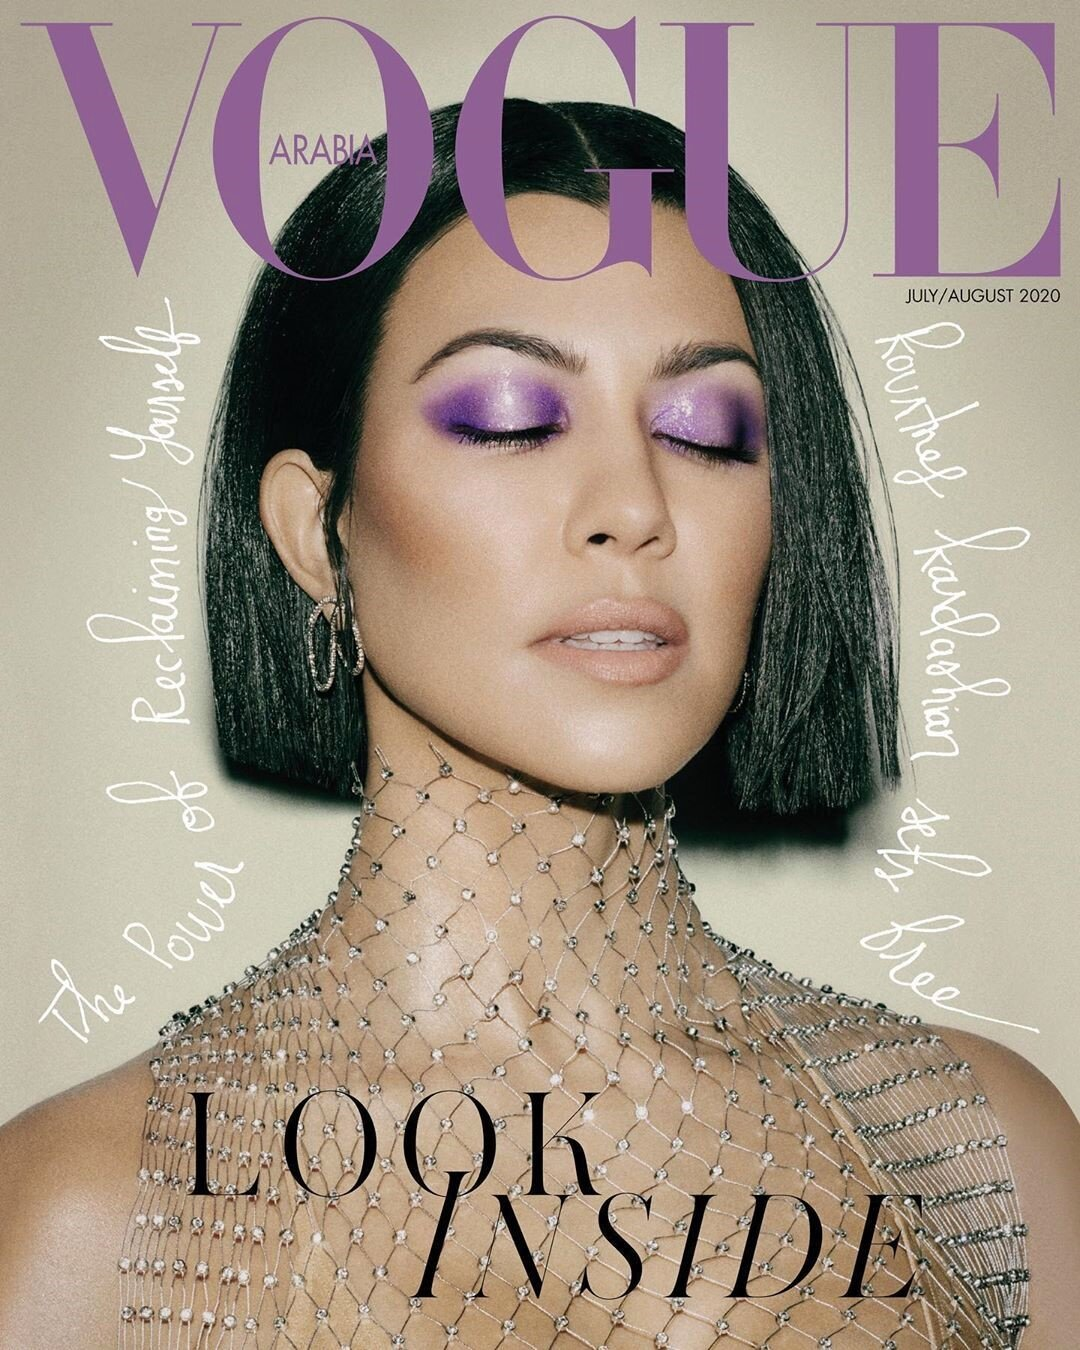 Kourtney Kardashian covers the July/August 2020 issue of Vogue Arabia. Photographed by Arved Colvin-Smith and styled by Graham Cruz.